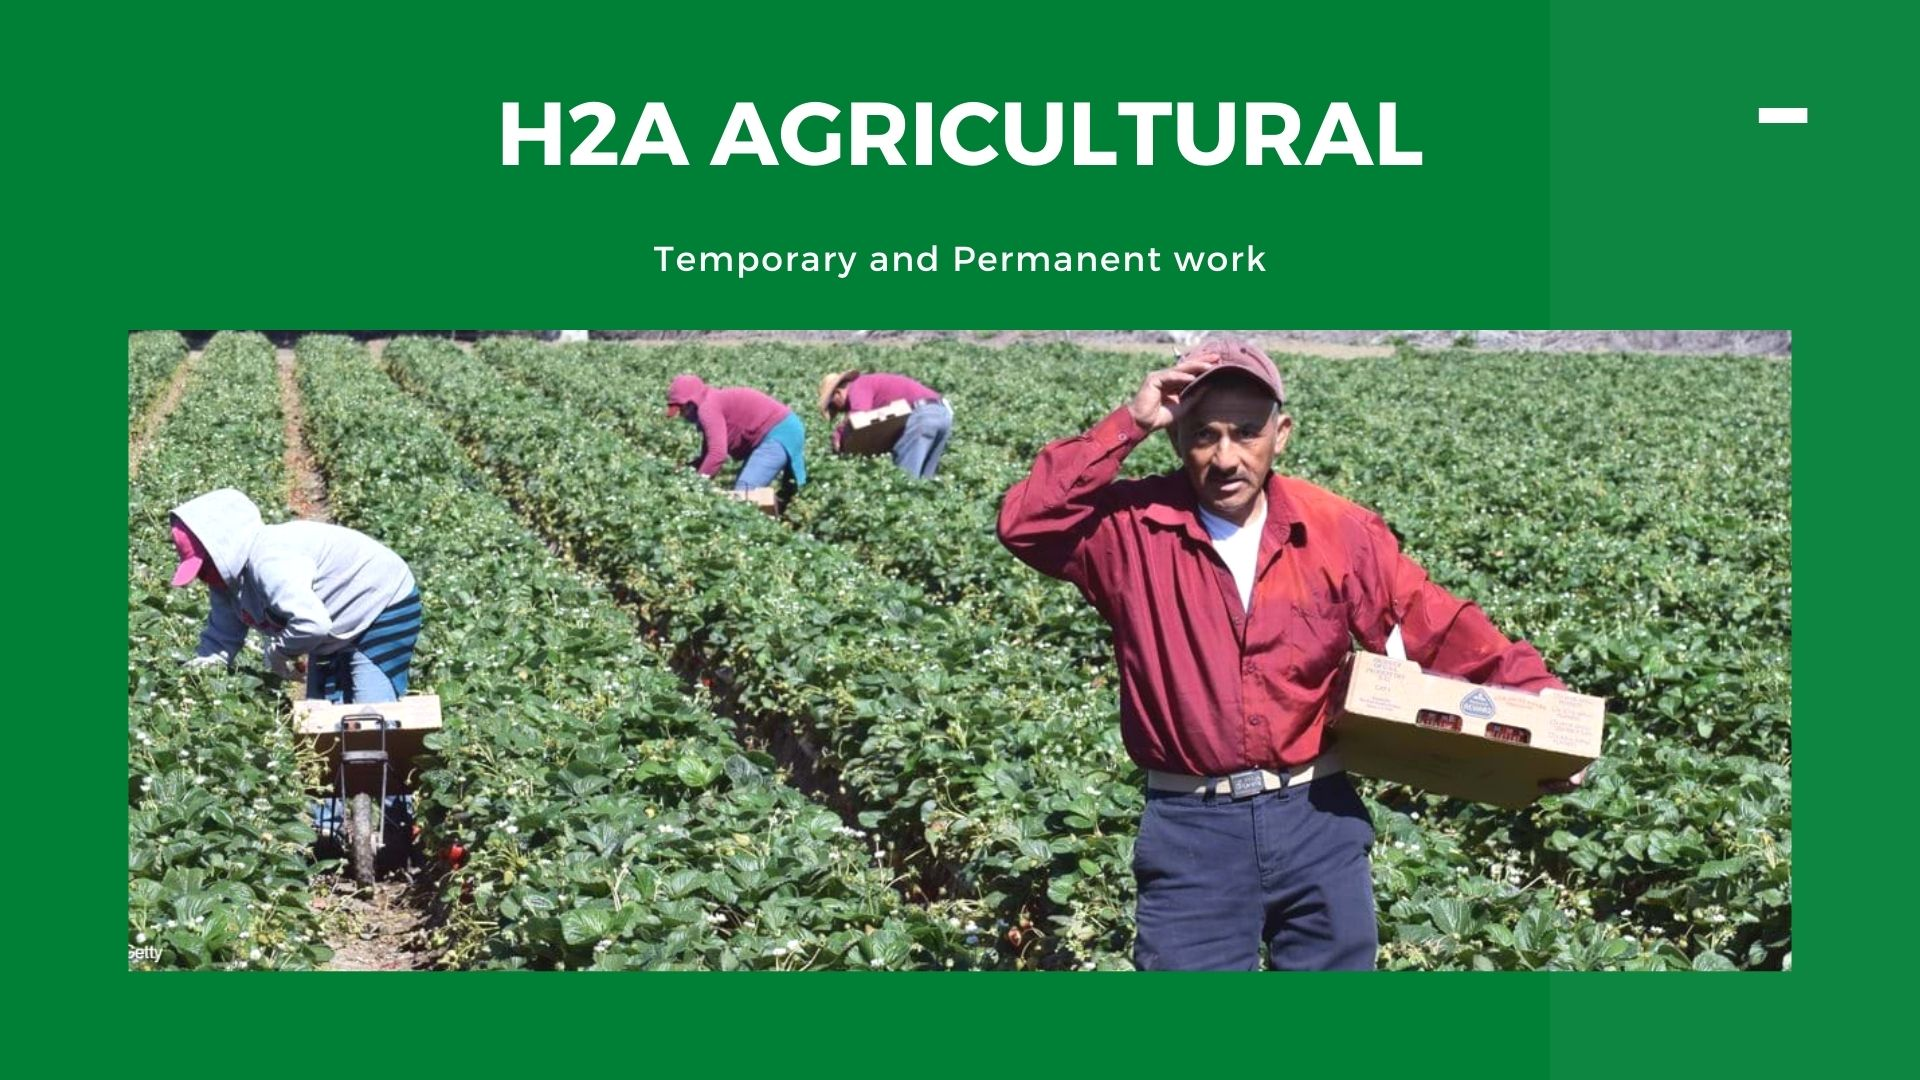 H2A AGRICULTURAL